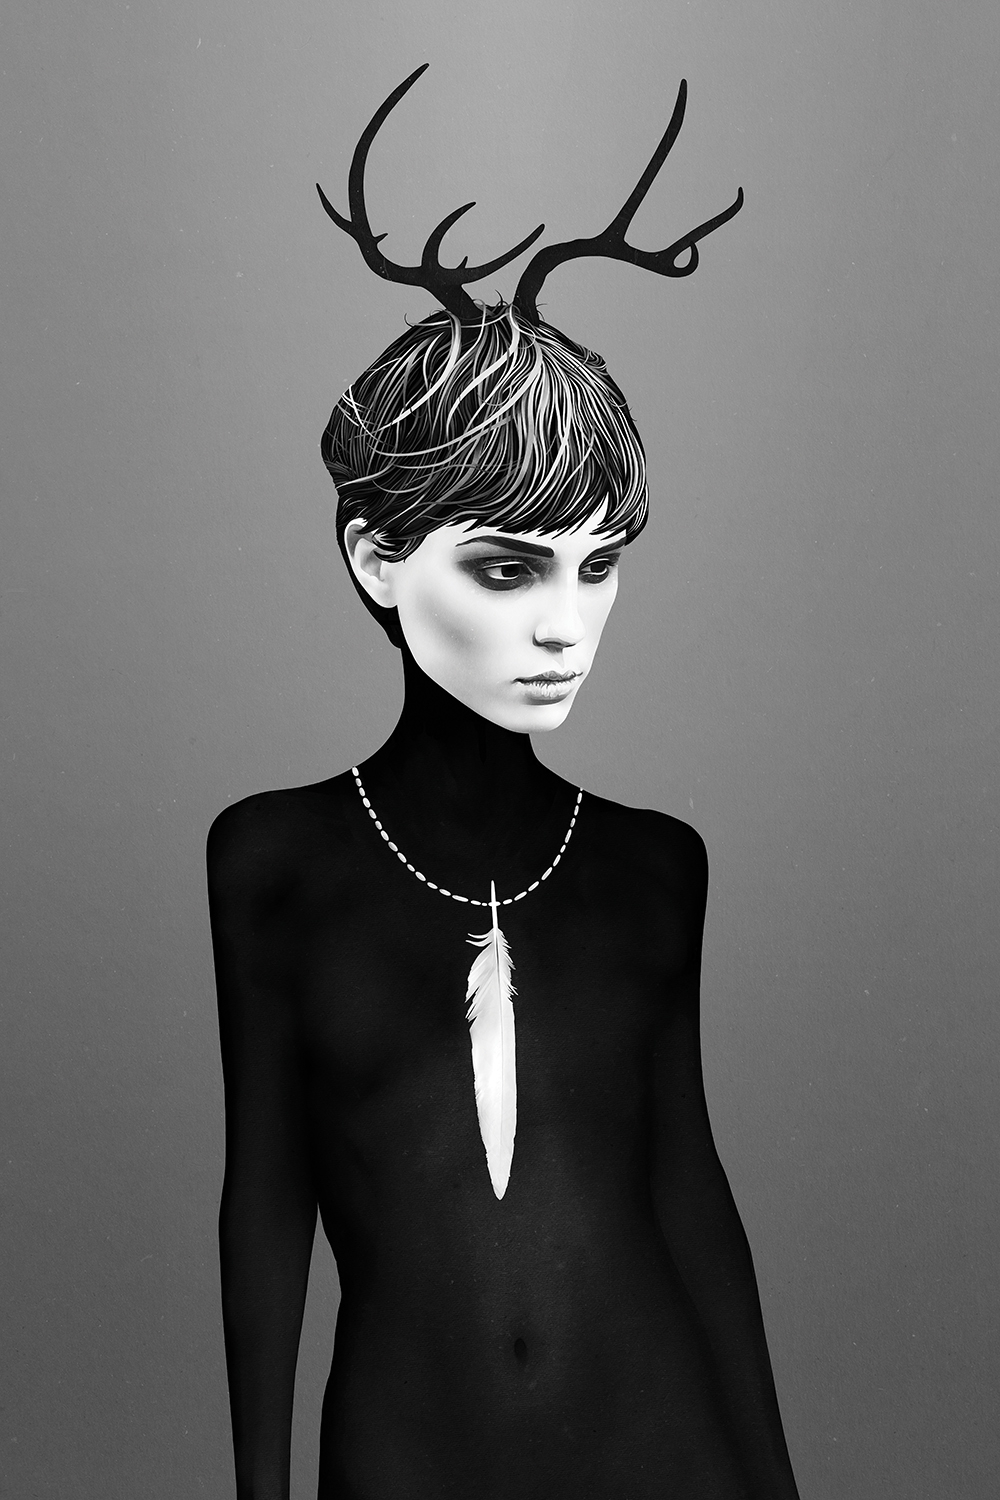 a woman shadowed in black wearing antlers in her hair and a long white feather around her neck